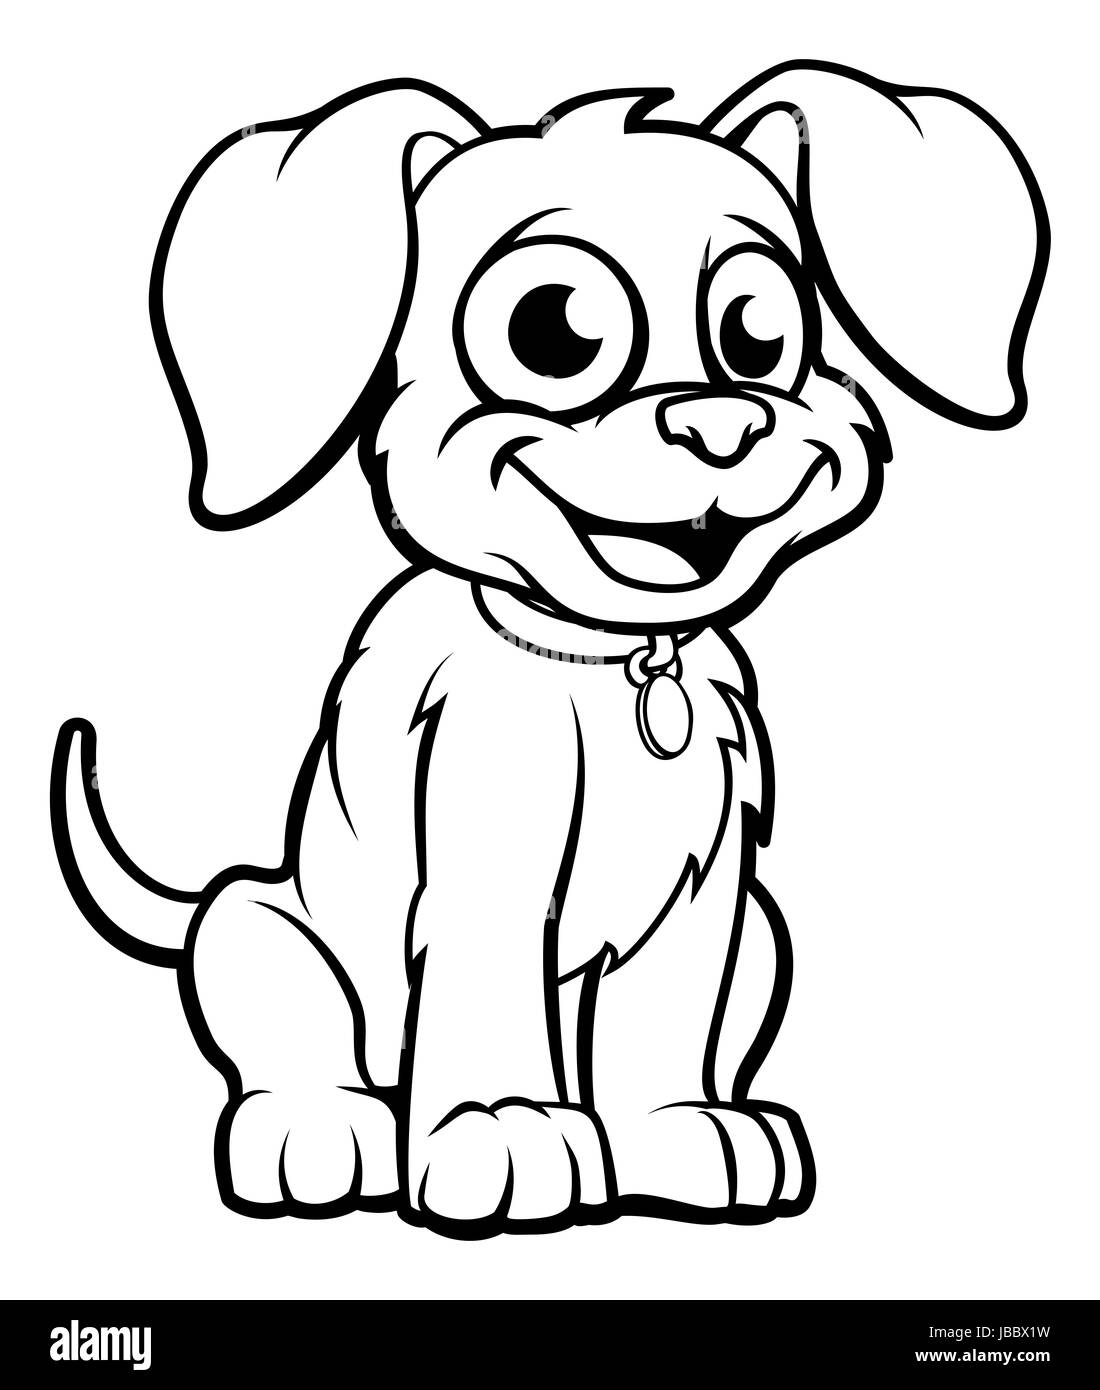 cute cartoon dog character outline coloring illustration - Animal Outlines To Color